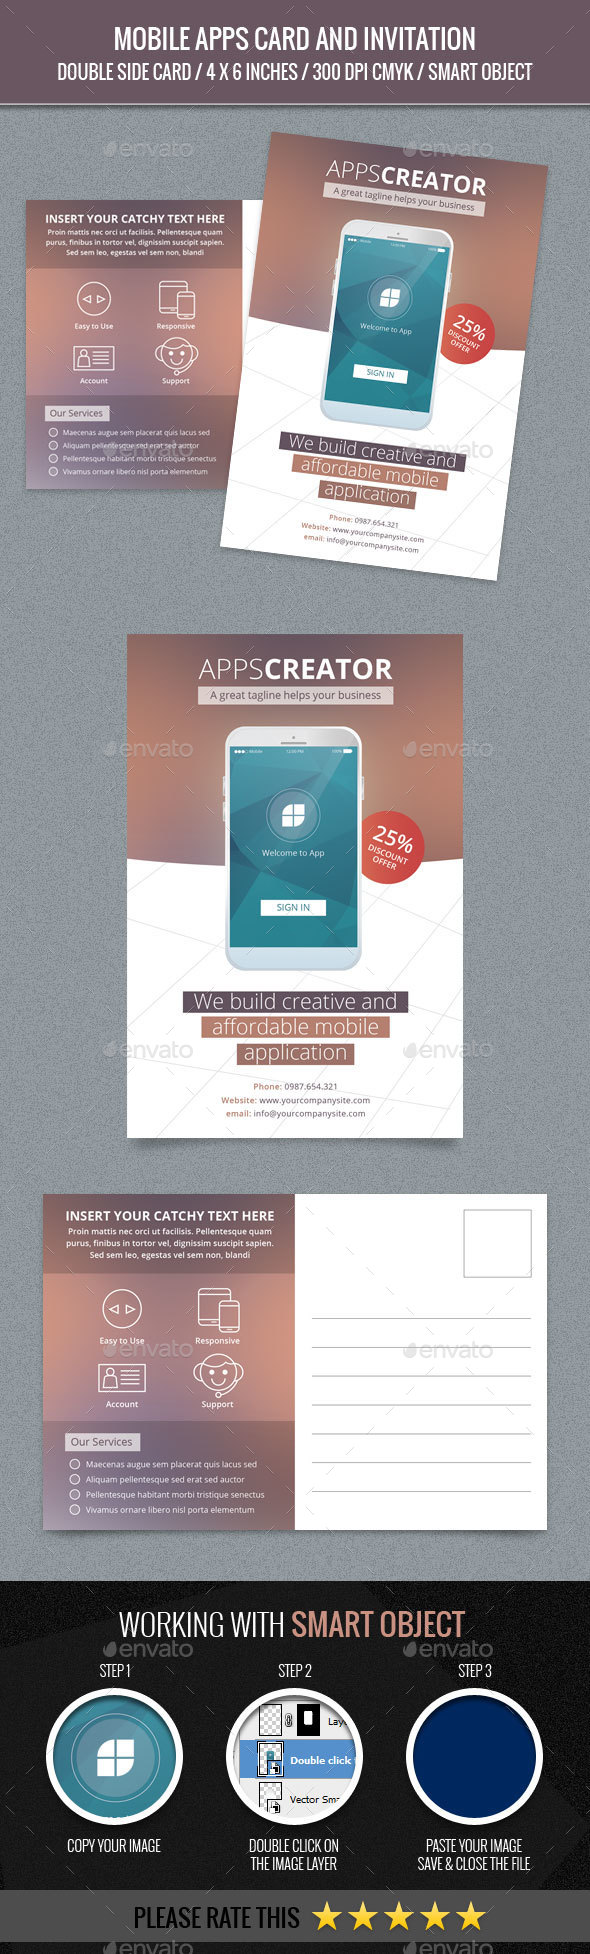 Mobile Apps Post Card Template - Cards & Invites Print Templates